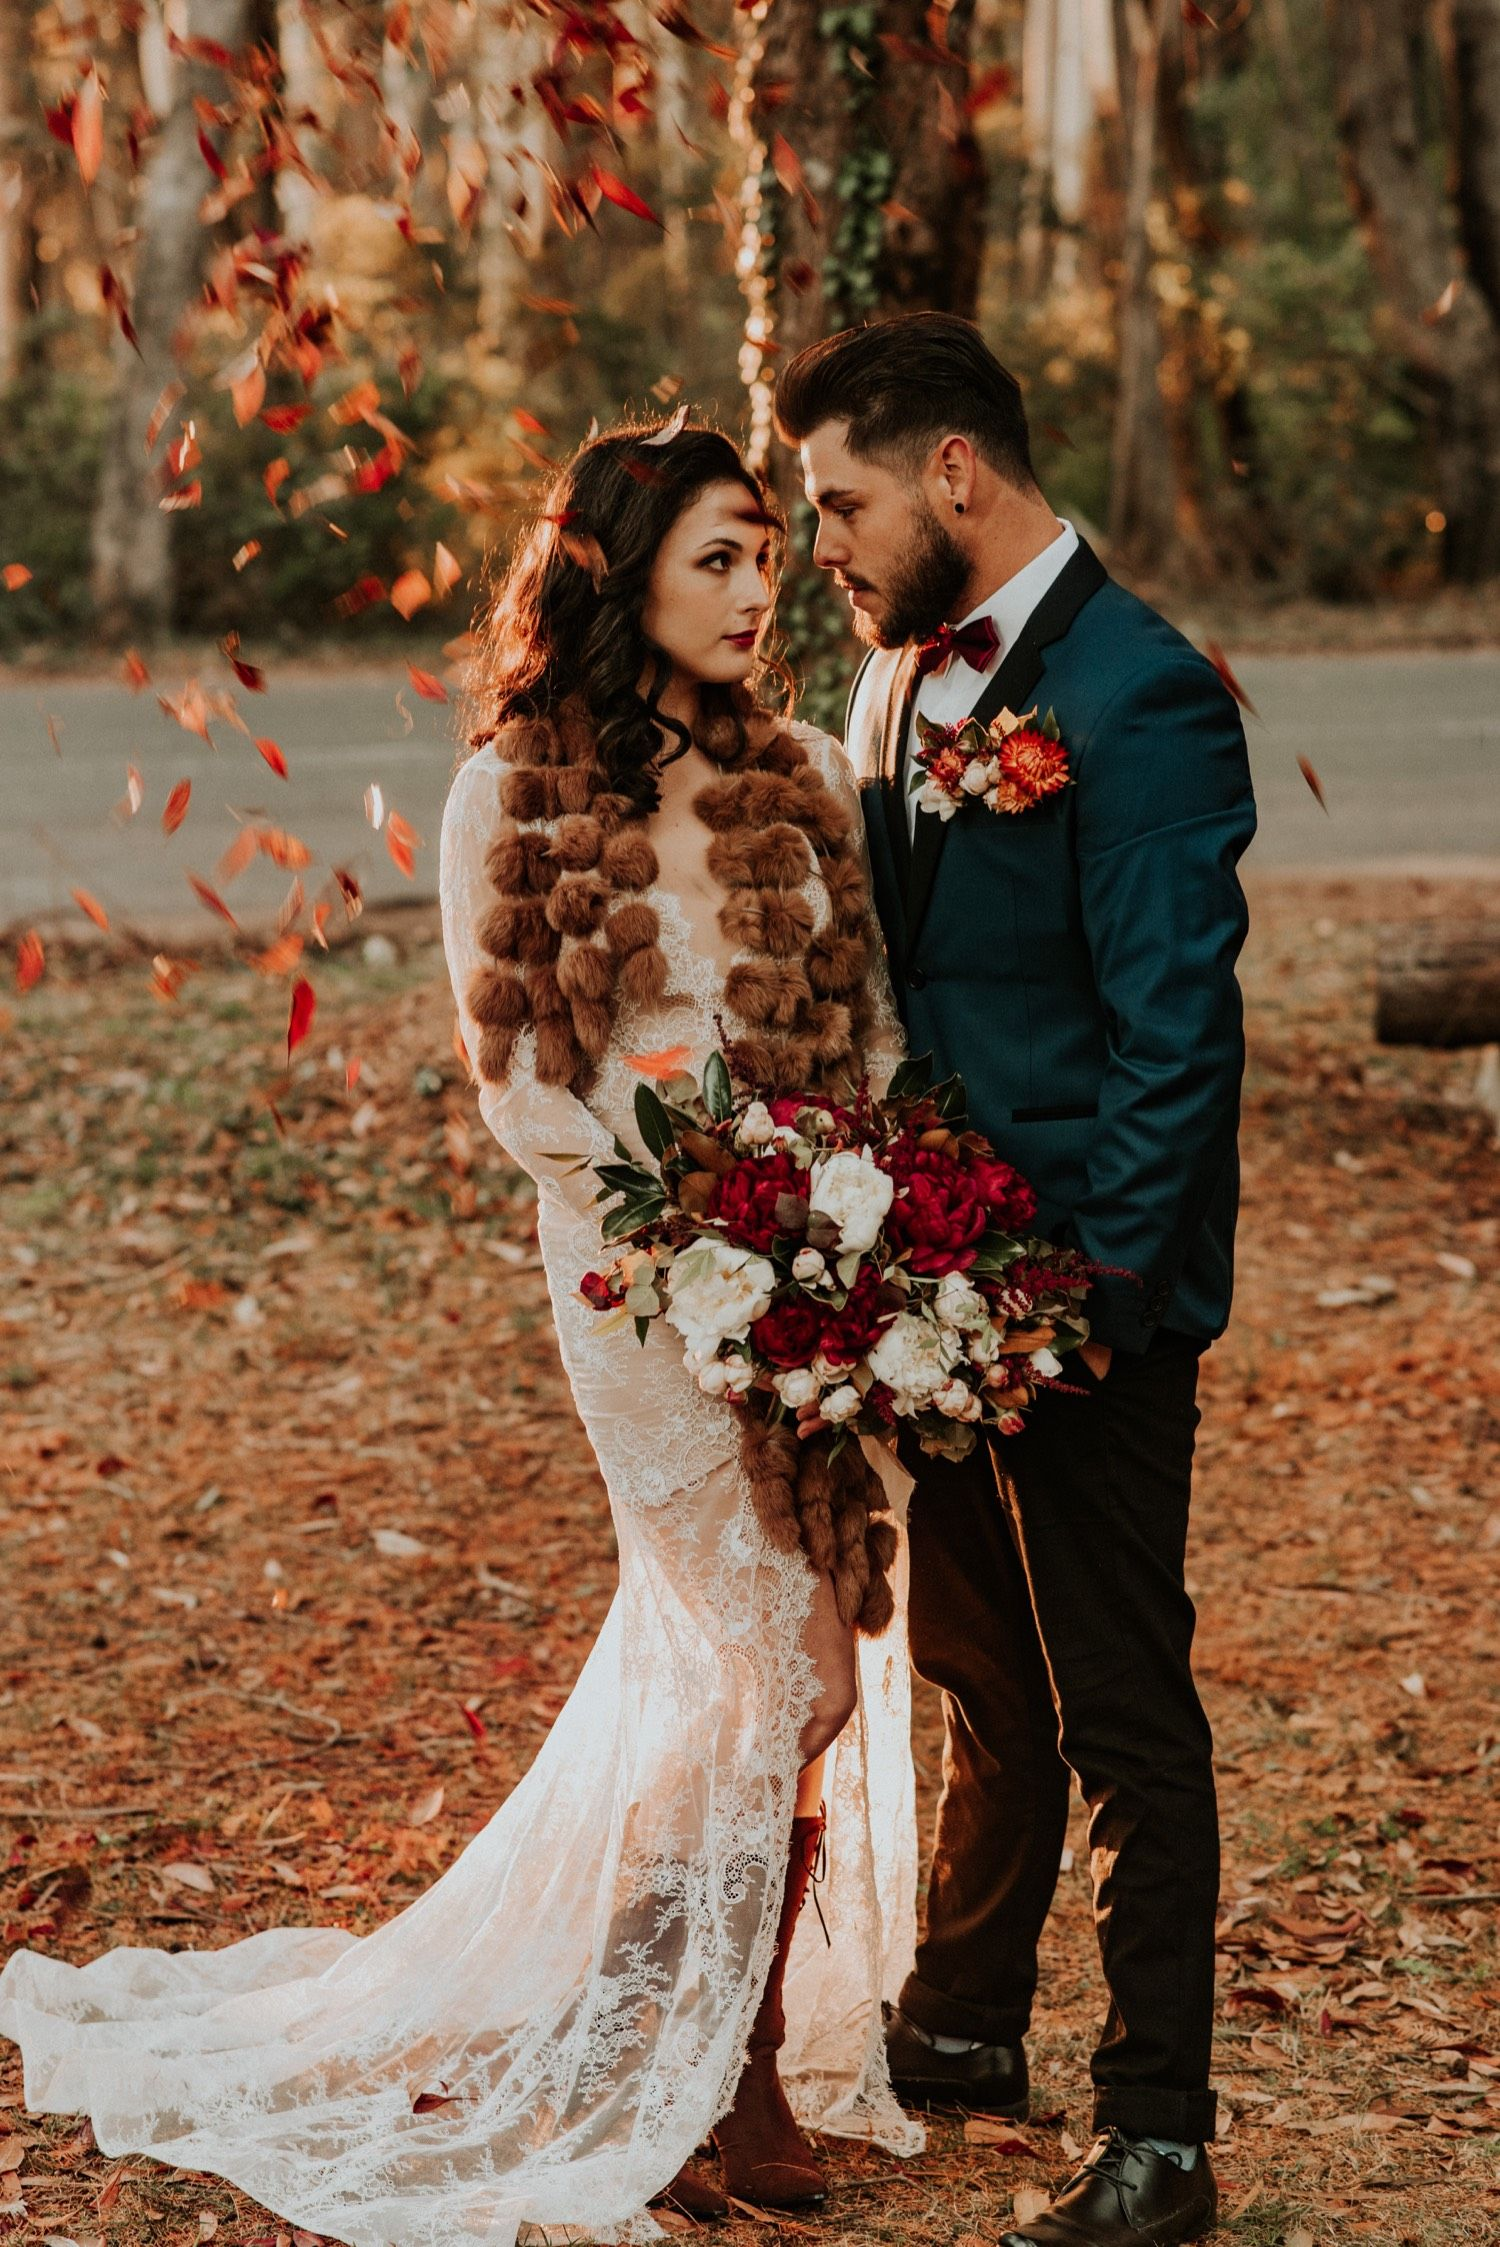 Sunsets, Autumn & Elopements 3 of our favourite things